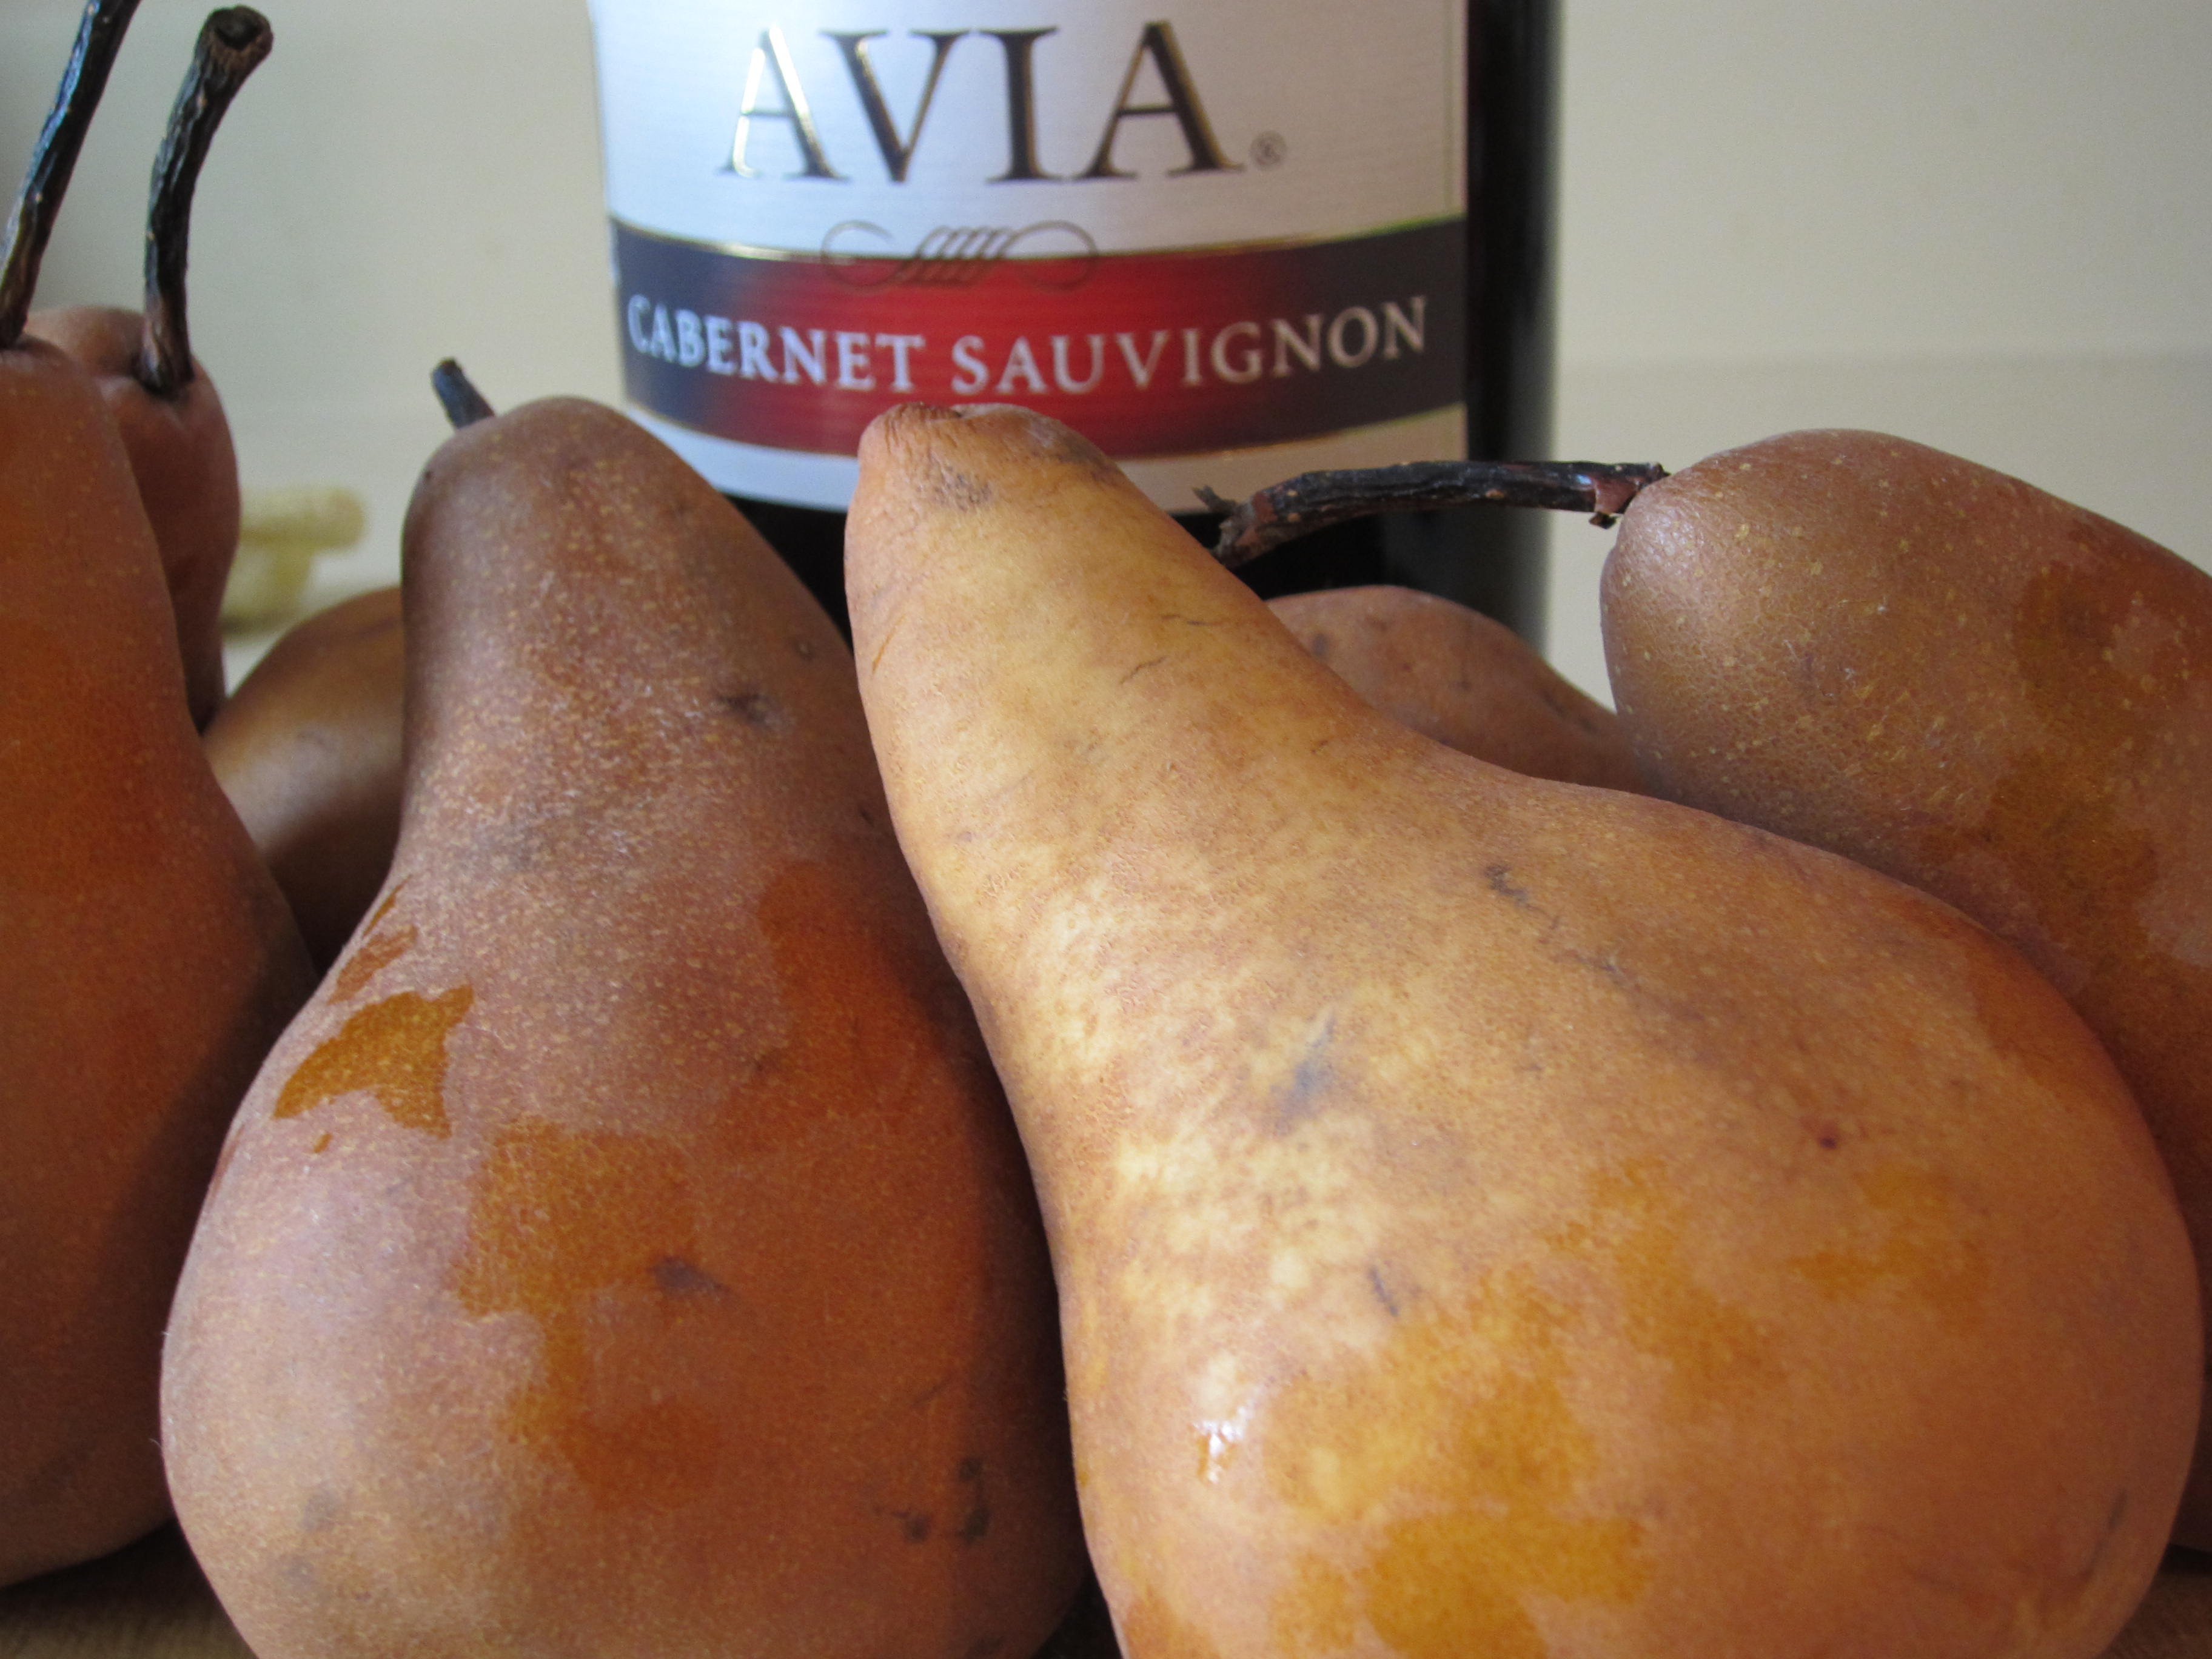 Preparing wine from pears at home